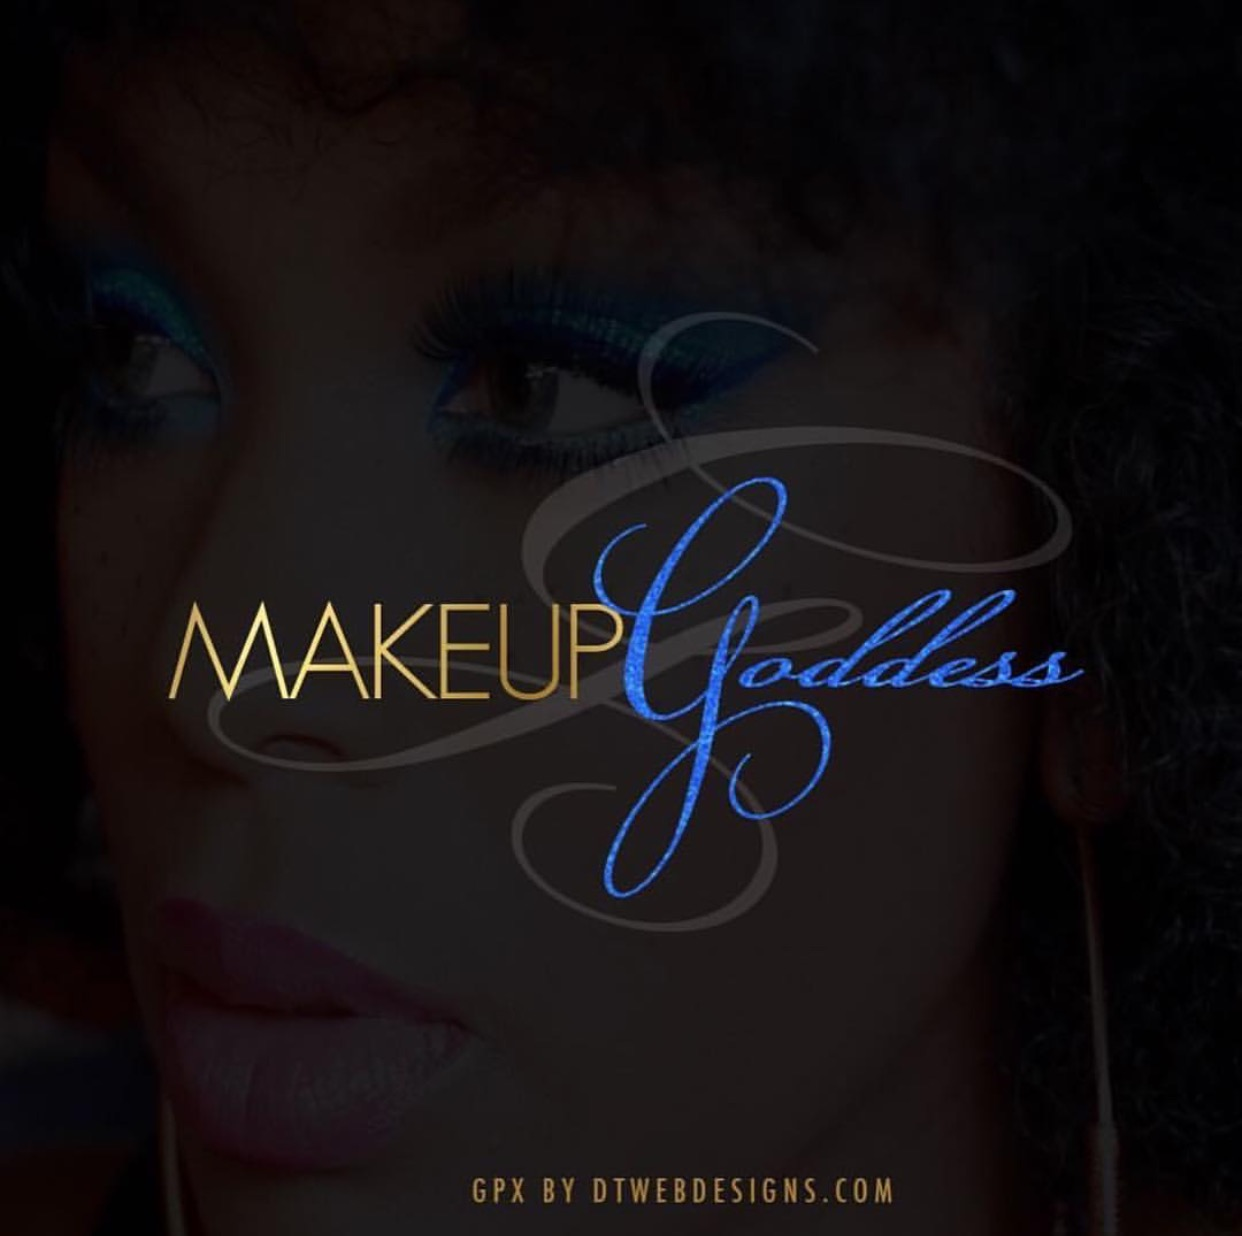 MAKEUP LOGO DESIGNS